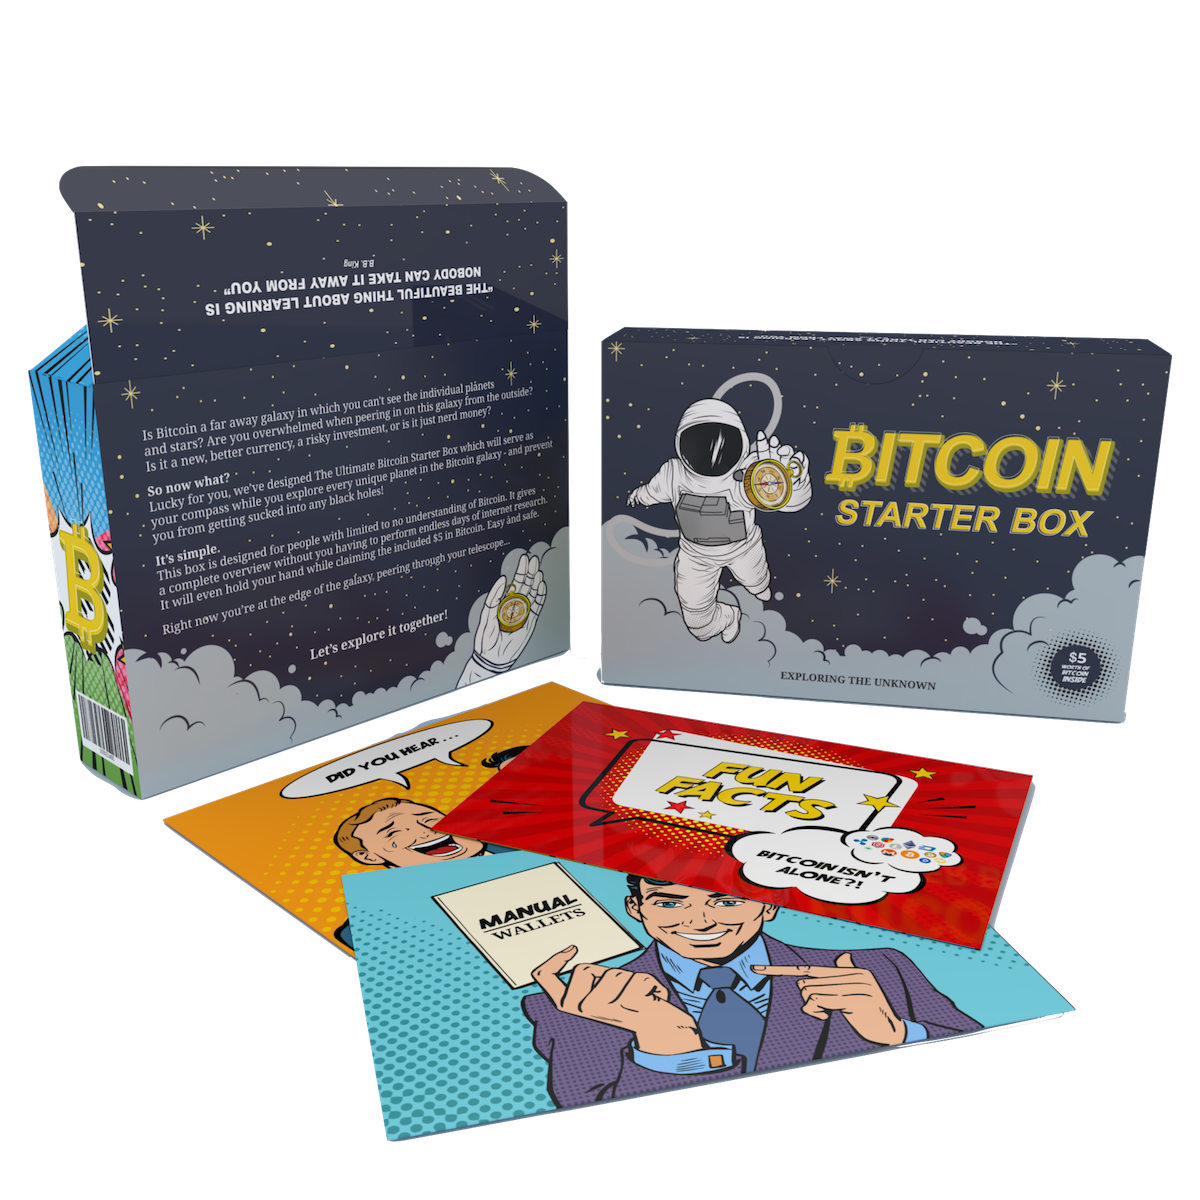 Bitcoin Starter Box back